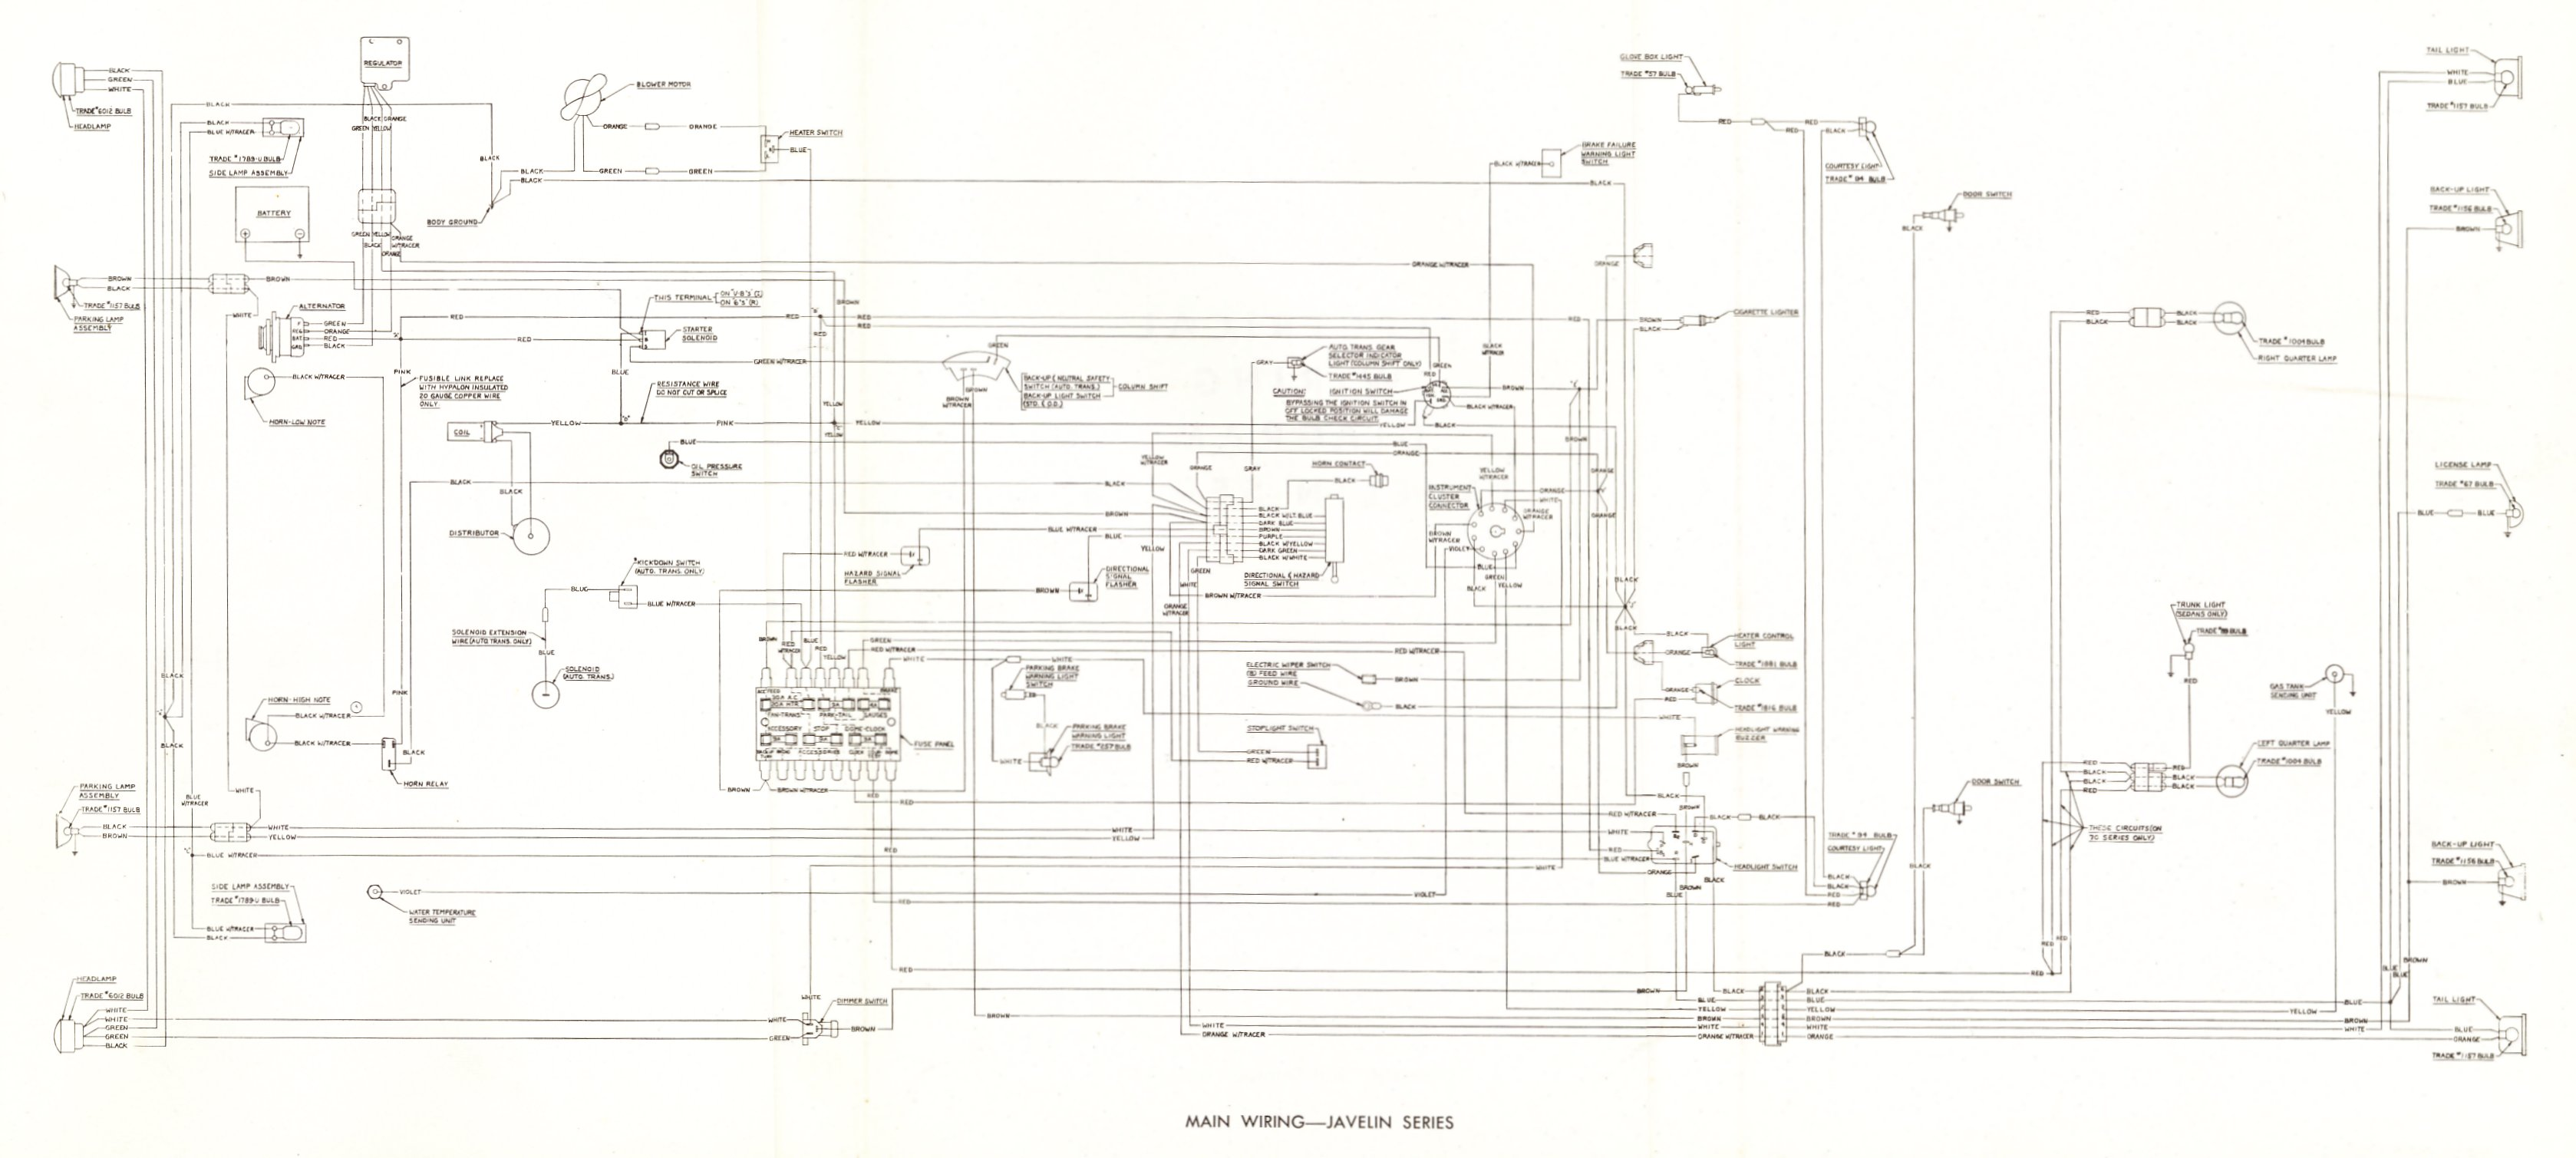 Amc Amx Wiring Diagram Change Your Idea With Design 1970 Torino Technical Javelin 1968